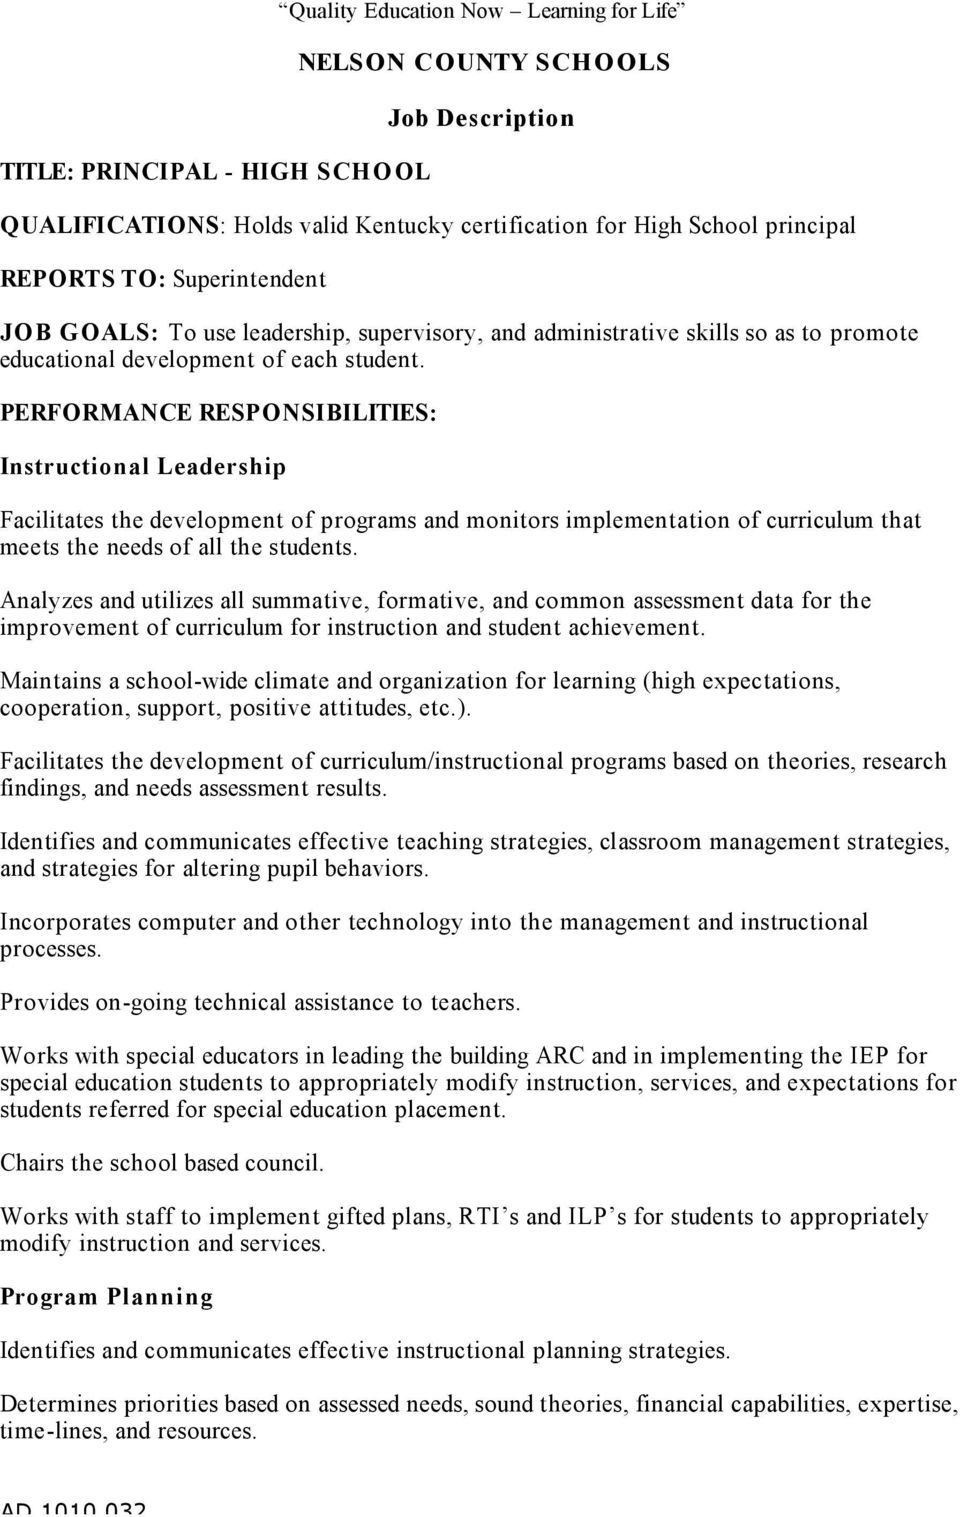 PERFORMANCE RESPONSIBILITIES: Instructional Leadership Facilitates the development of programs and monitors implementation of curriculum that meets the needs of all the students.